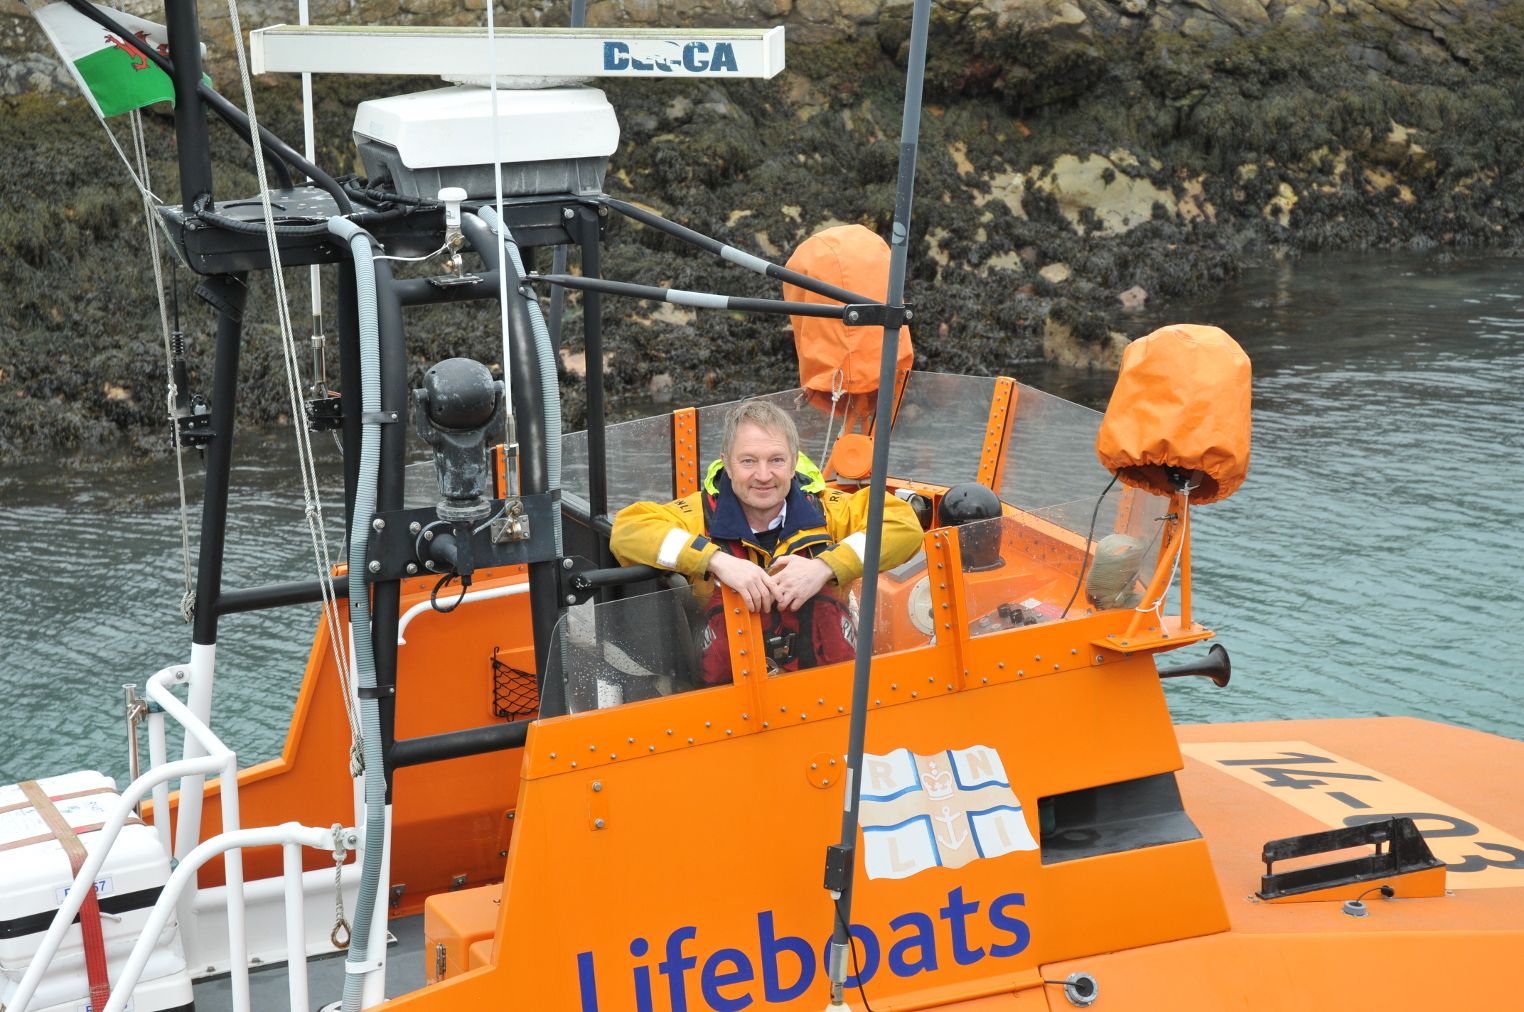 Fishguard RNLI Coxswain Paul Butler has stood down after 24 years of service